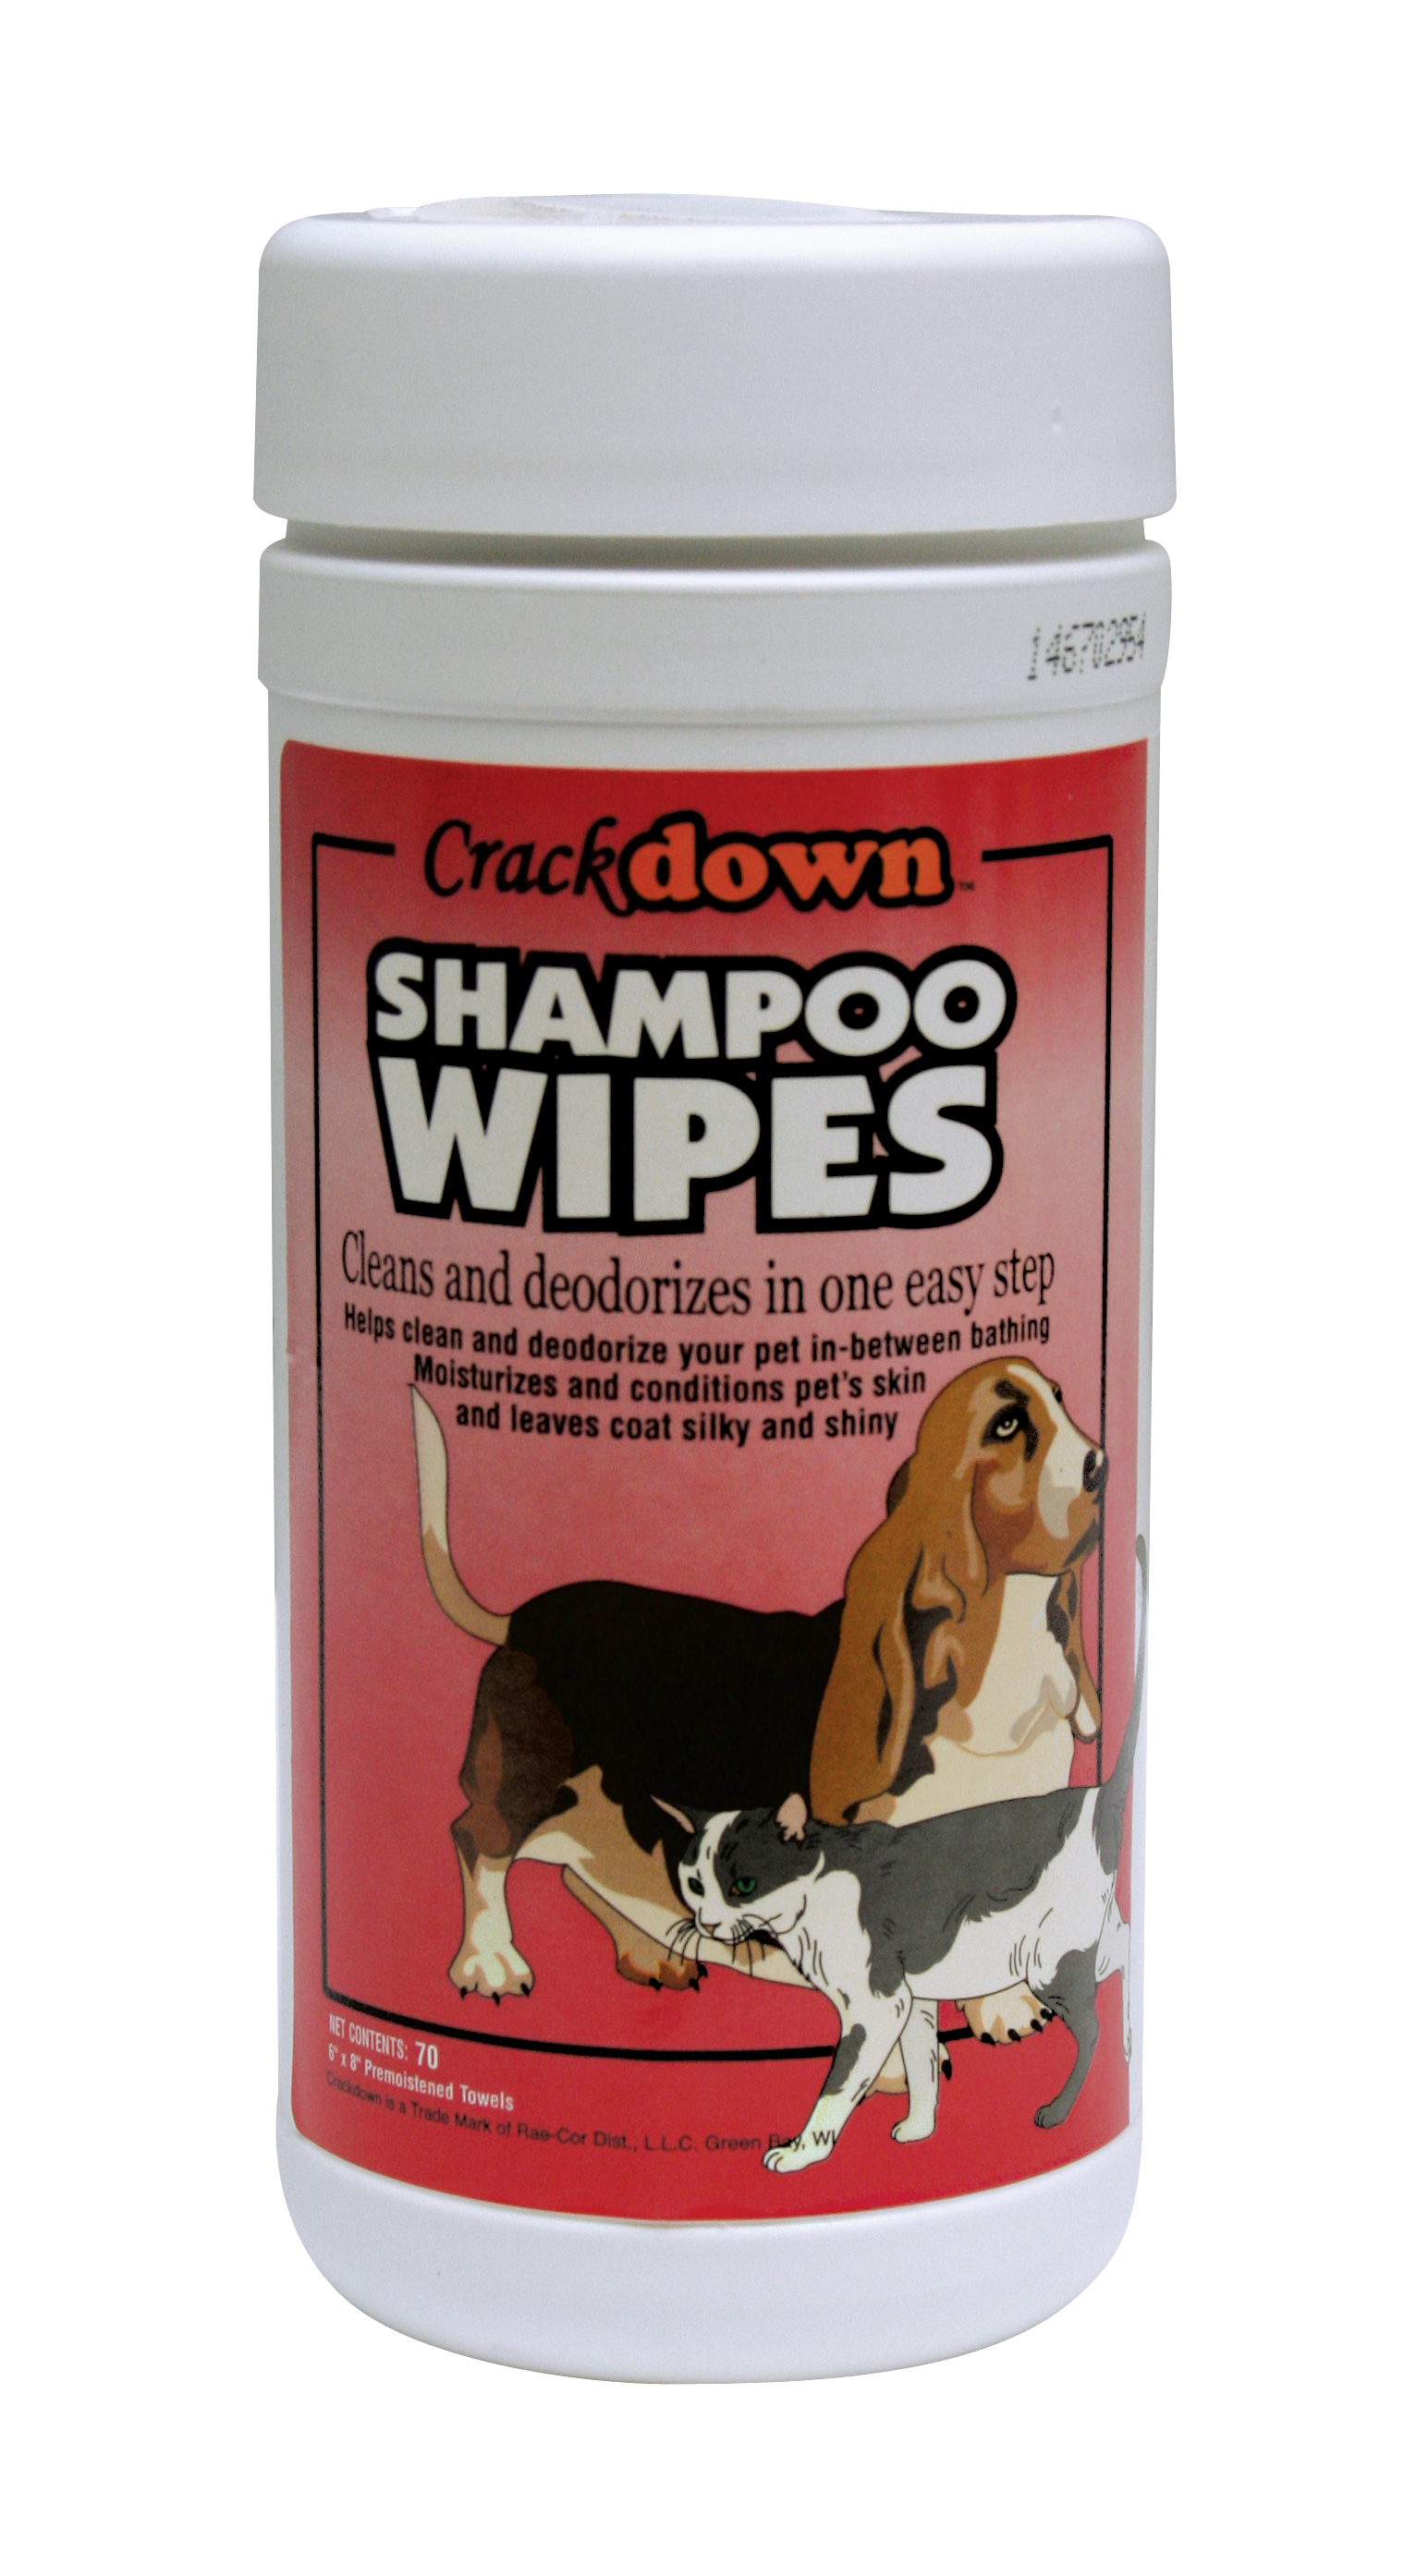 SHAMPOO WIPES - 70 COUNT CANISTER